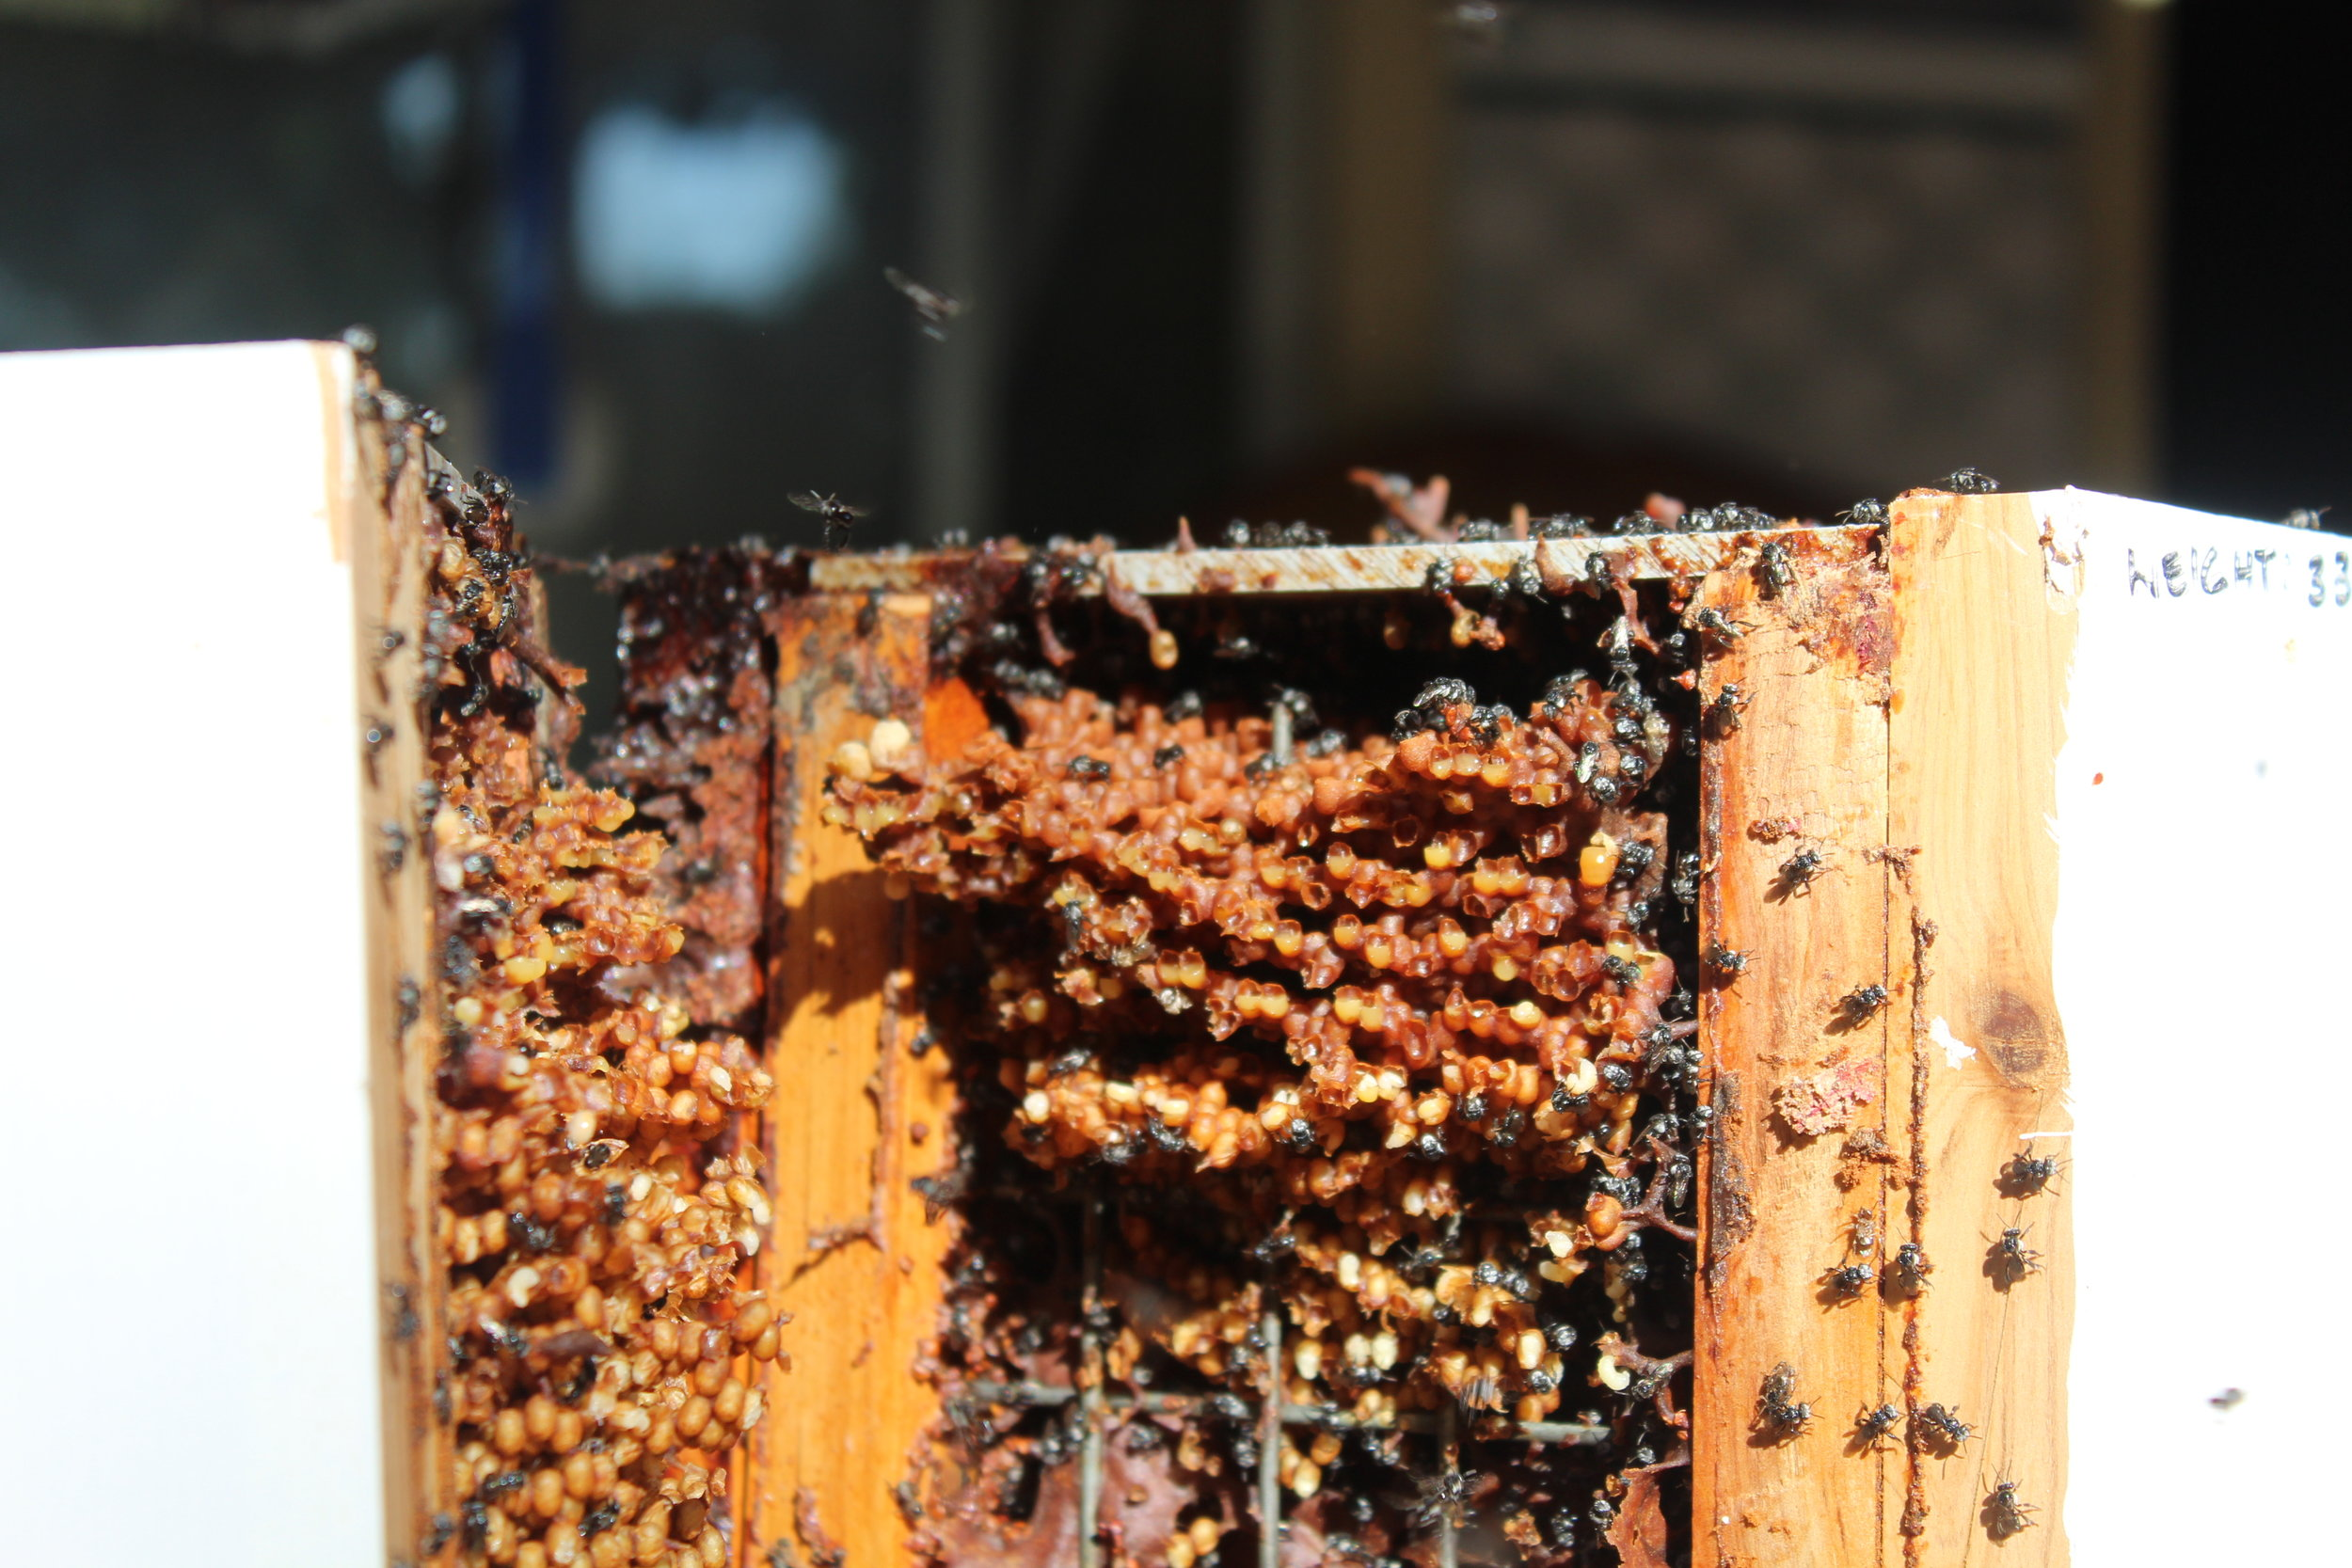 Nobby's Australian Native Bees - Noel O'Brien, Redcliffe, QLD (in boxes)Phone: 0409 627 571Email: obriennt@tpg.com.au